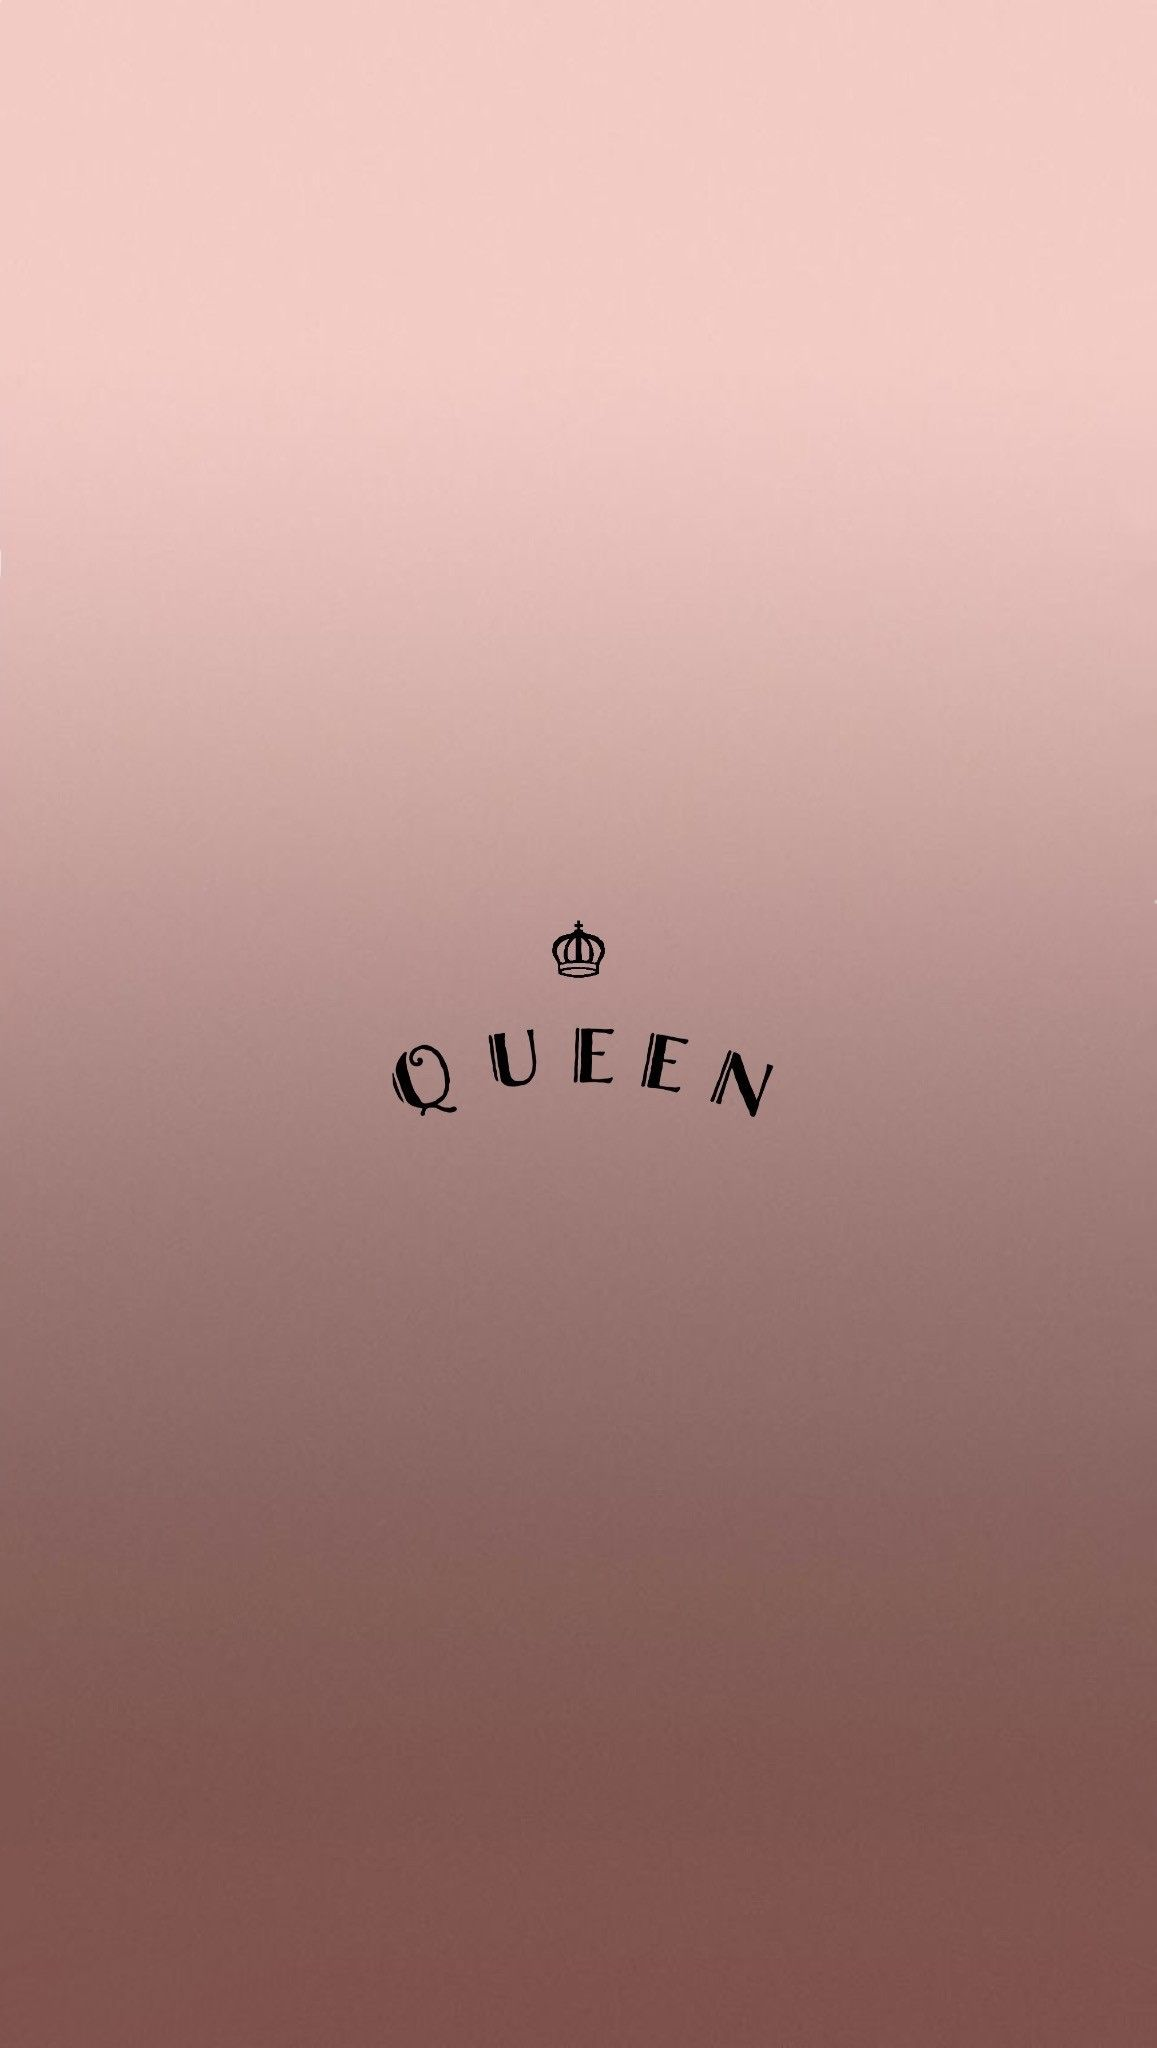 Pin By Elise On Wallpapers Cute Iphone Wallpaper Tumblr Rose Gold Wallpaper Queens Wallpaper